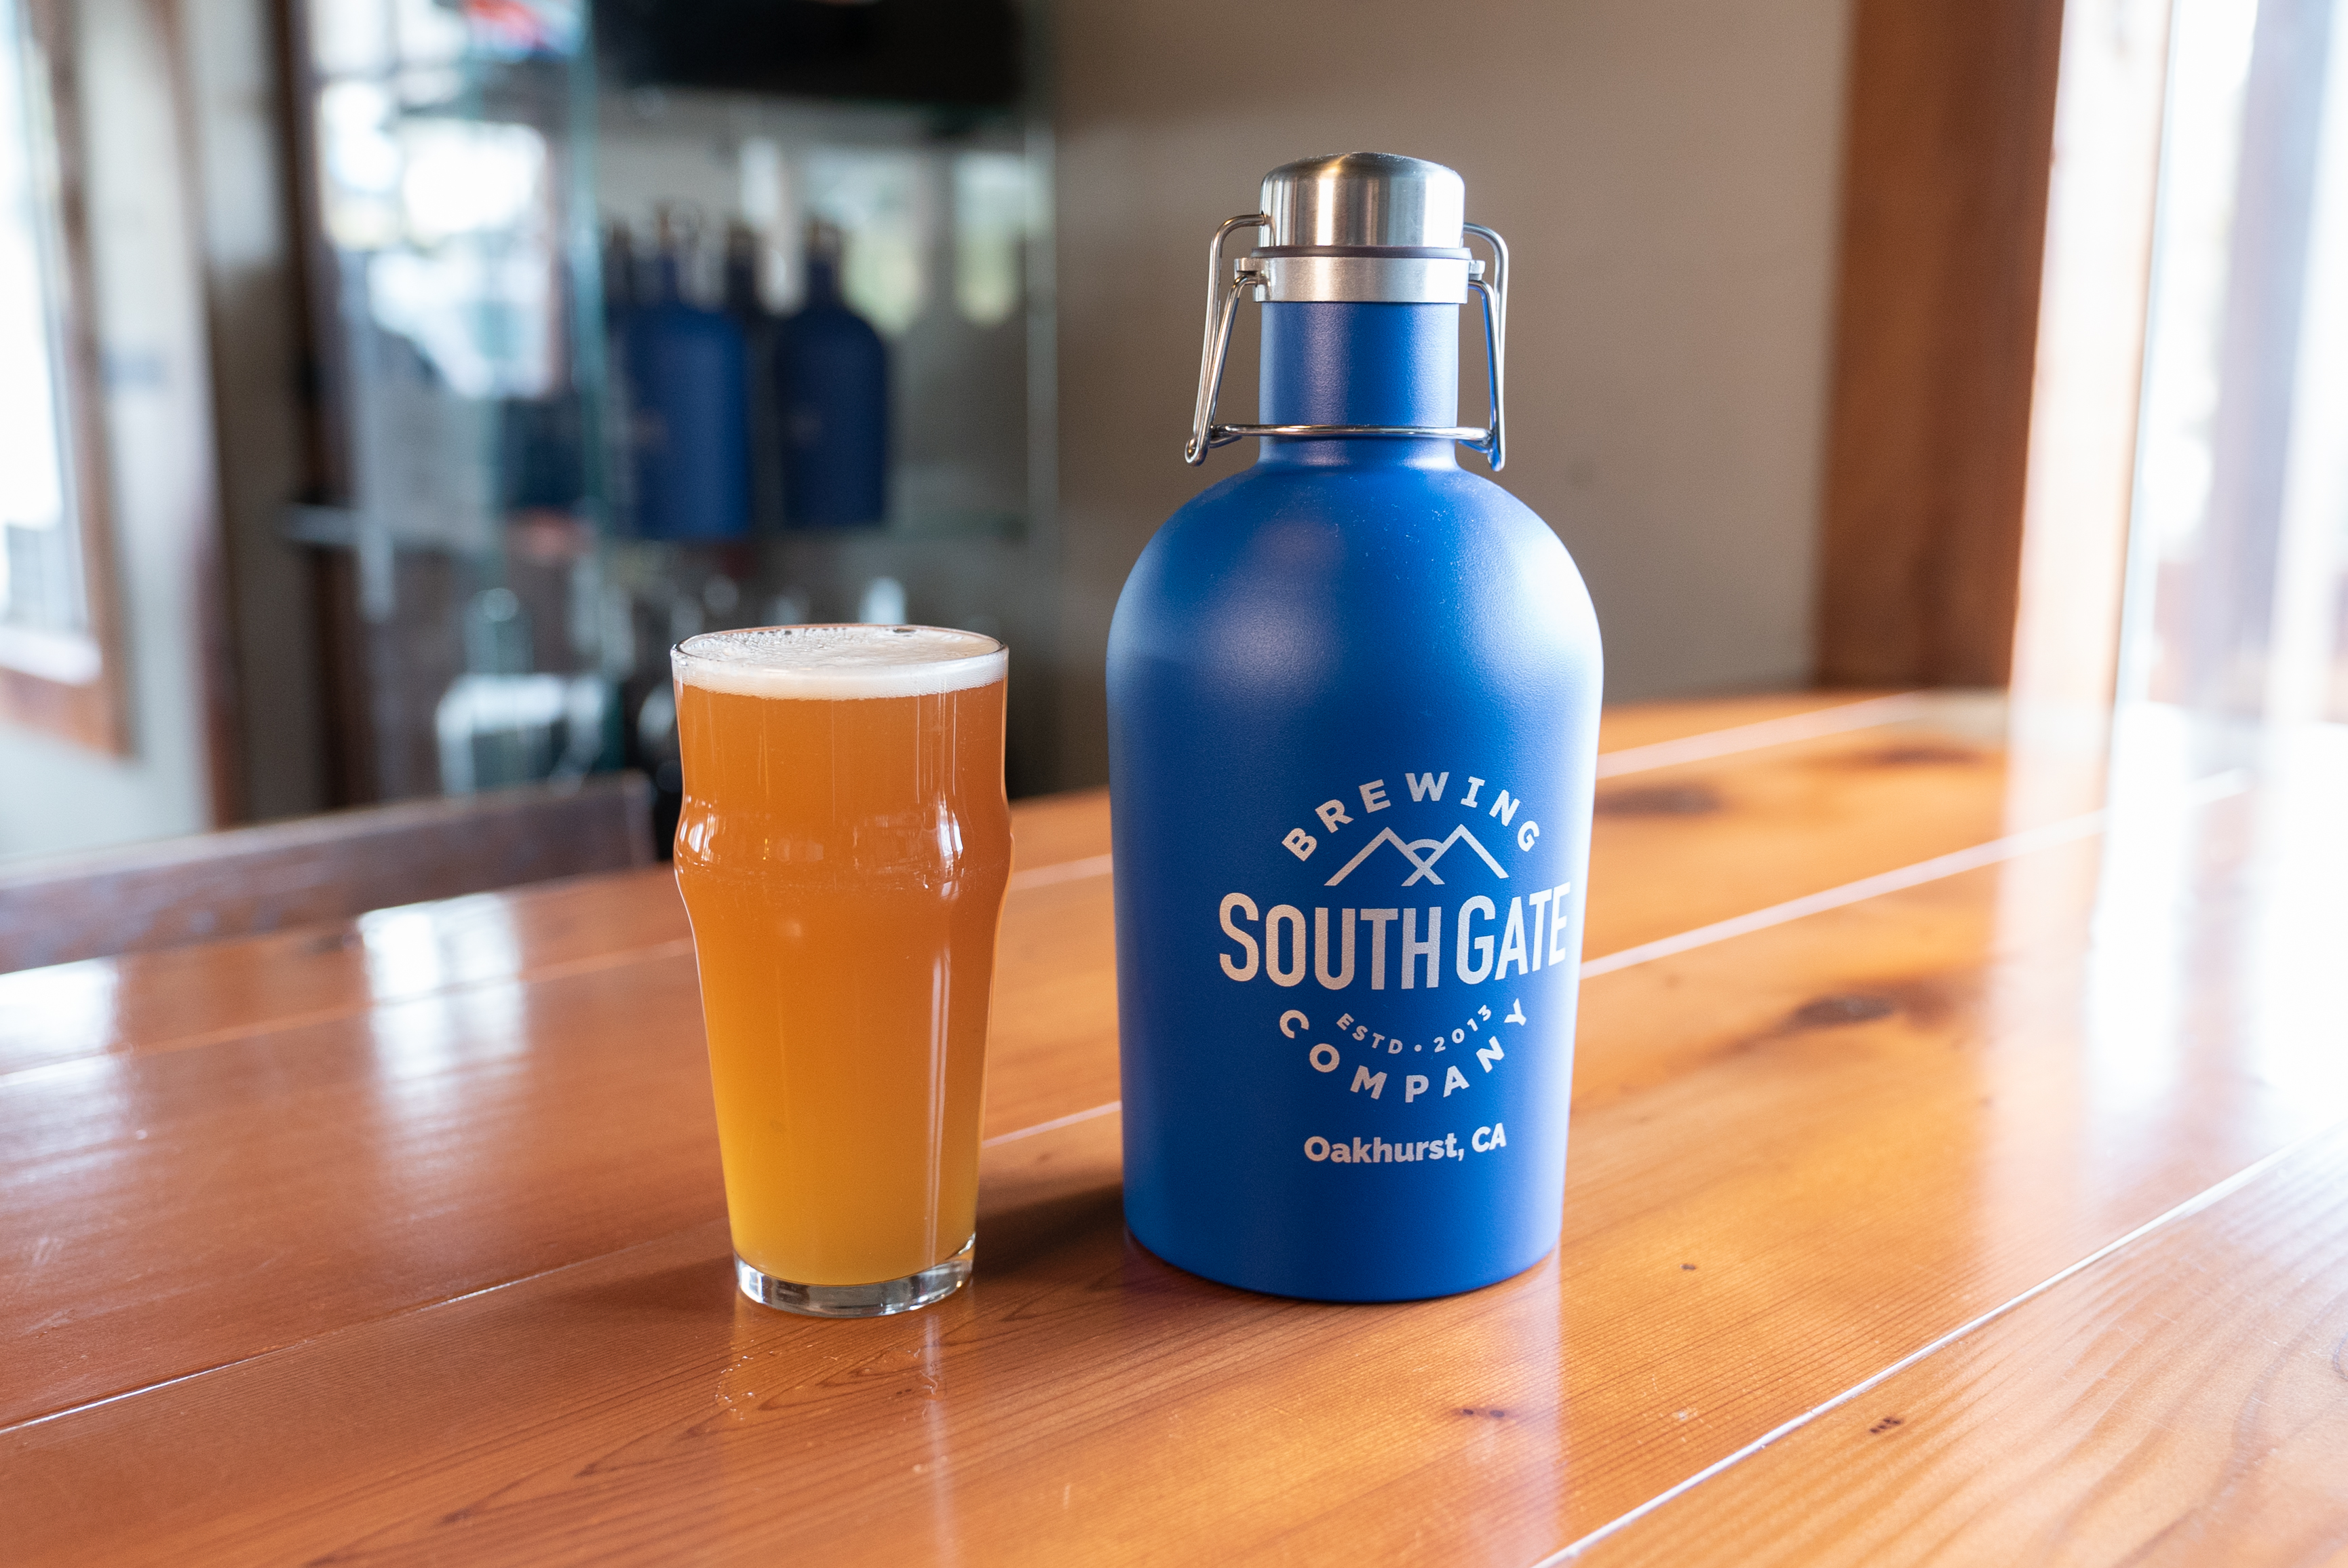 South Gate Brewing Company Hazy IPA and Growler